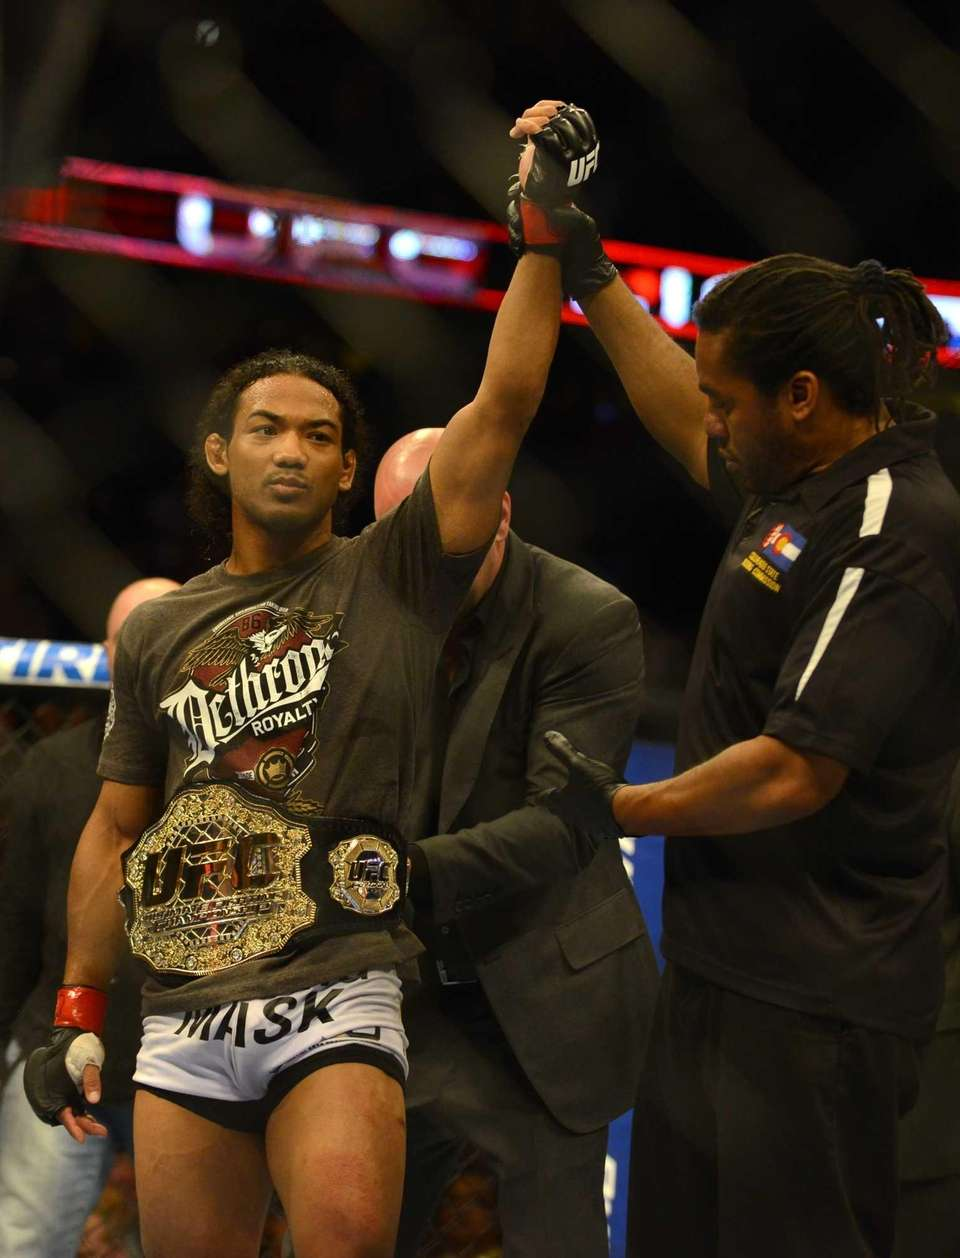 Successful title defenses: 3. Benson Henderson took the